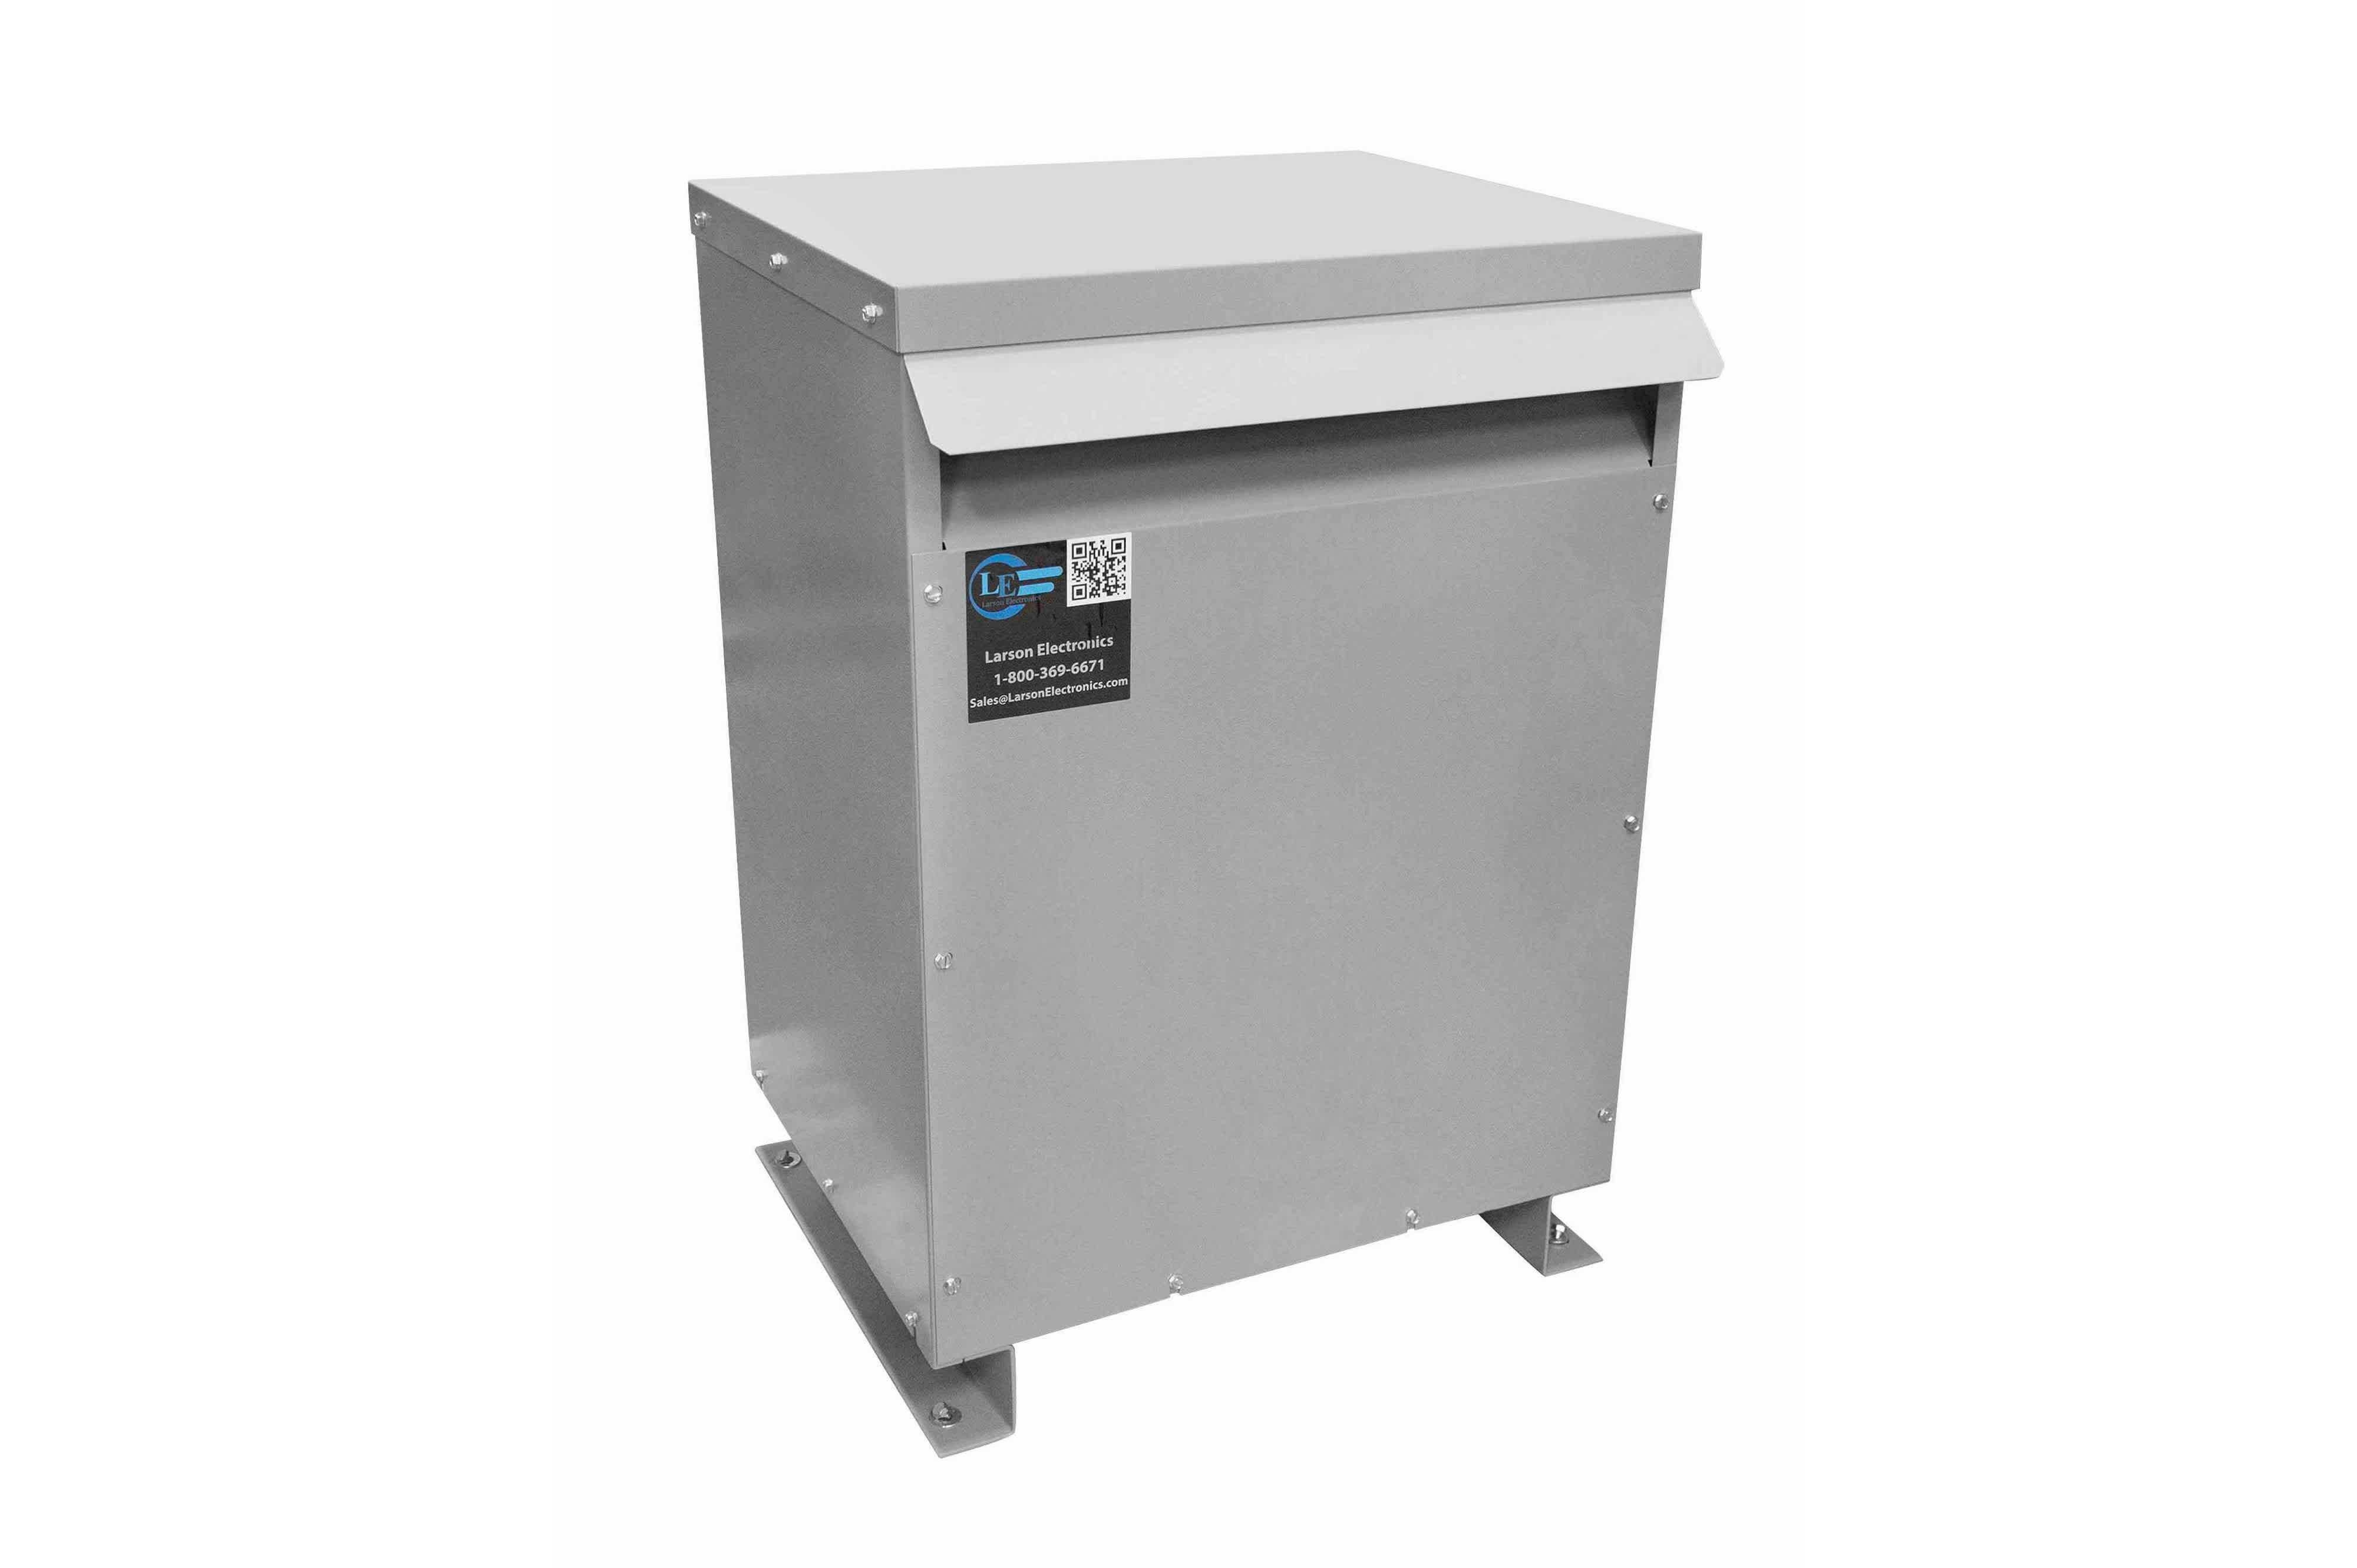 10 kVA 3PH DOE Transformer, 480V Delta Primary, 208Y/120 Wye-N Secondary, N3R, Ventilated, 60 Hz